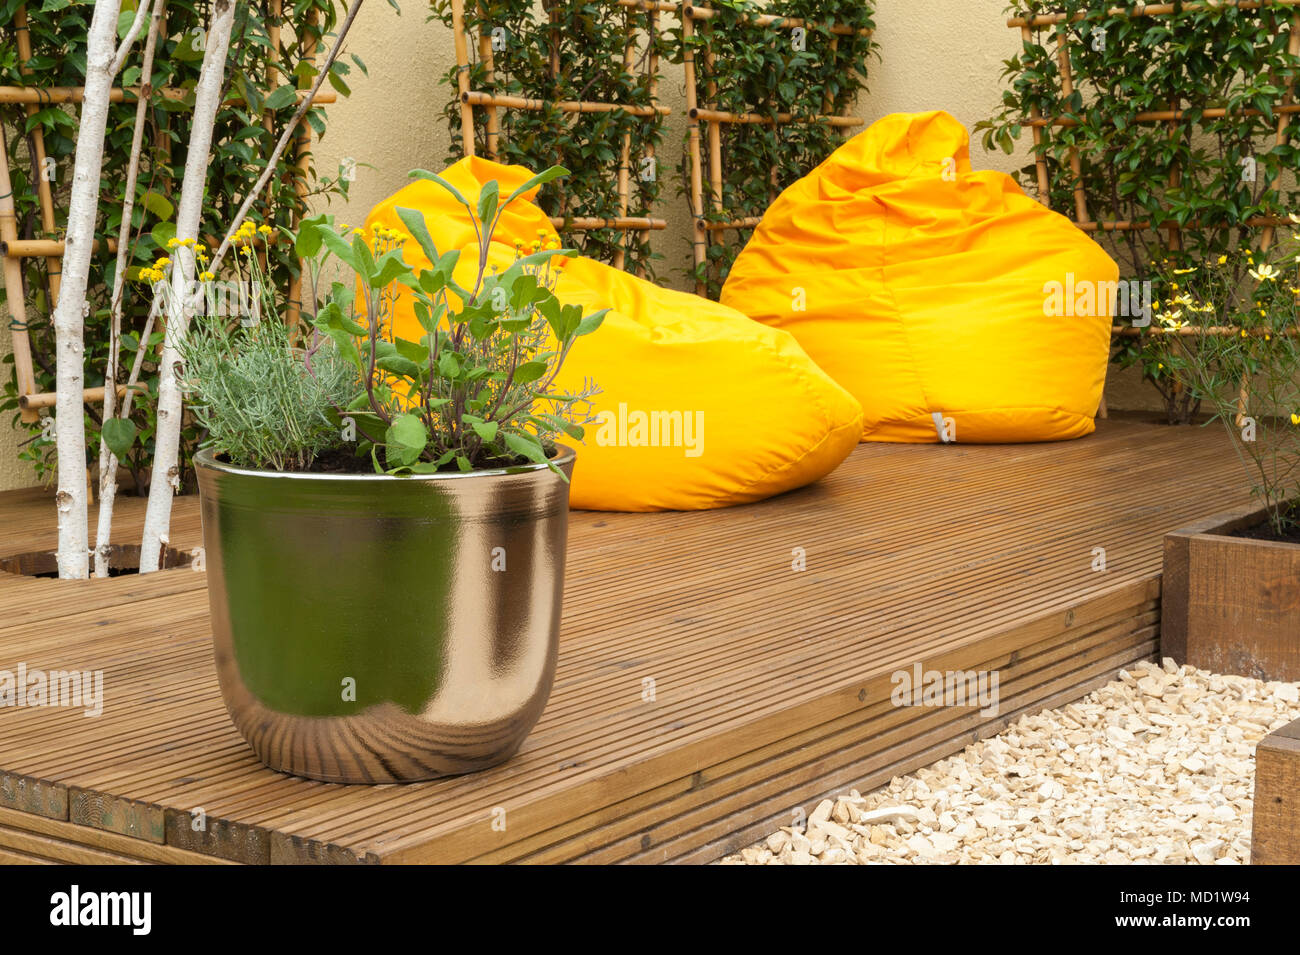 Close-up of pot plants & bright colourful, yellow beanbag chairs on timber decking - 'The Journey Garden' - RHS Flower Show, Tatton Park, England, UK - Stock Image